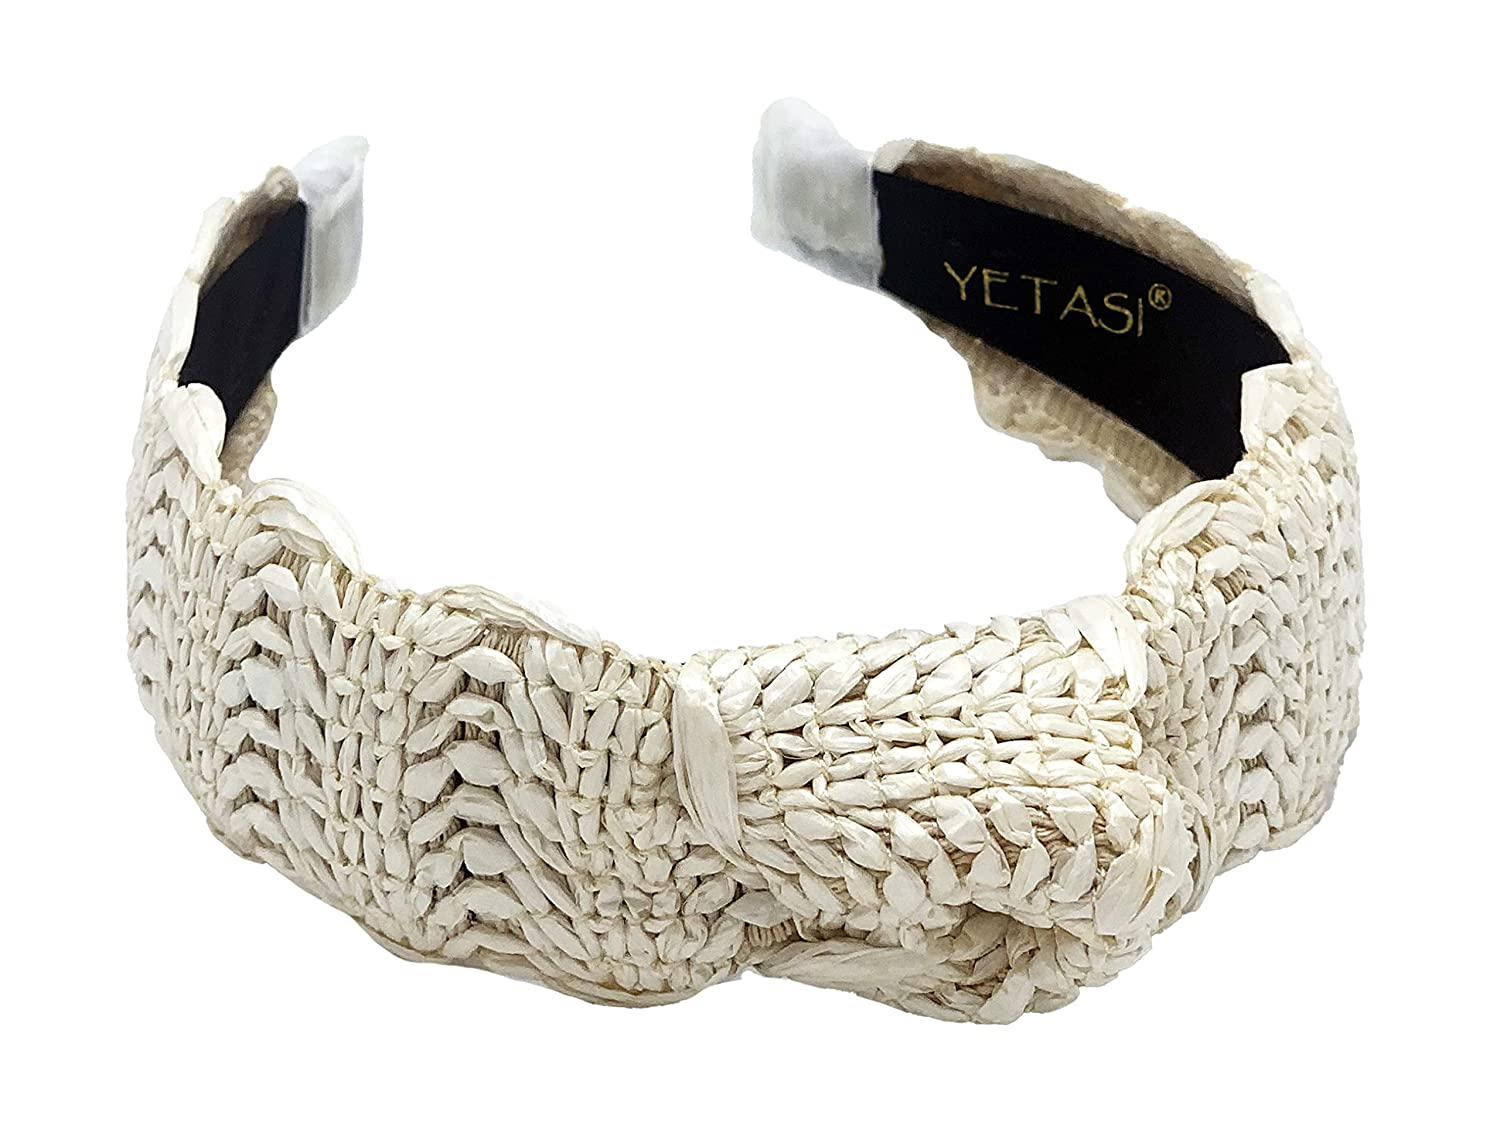 Headbands for Women's Hair Off White is Unique. Knotted Headband